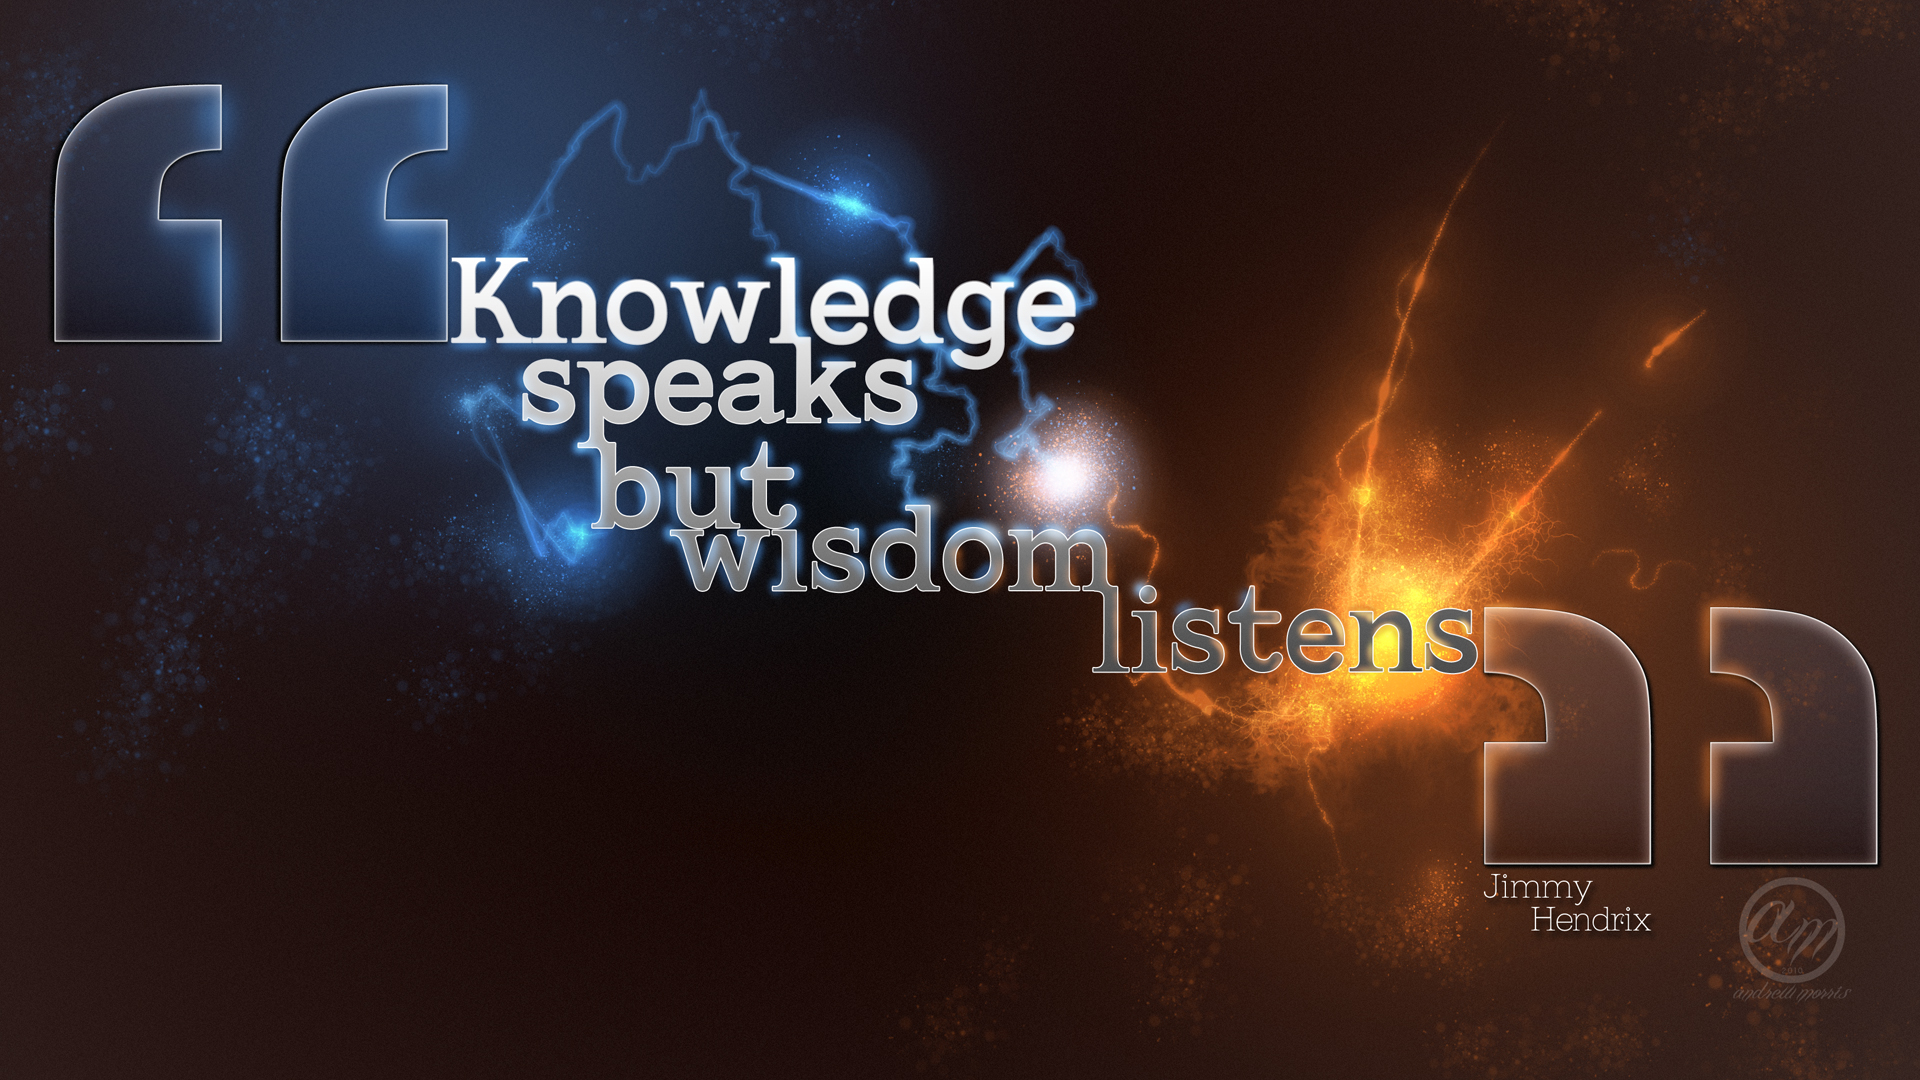 Images of Wisdom | 1920x1080